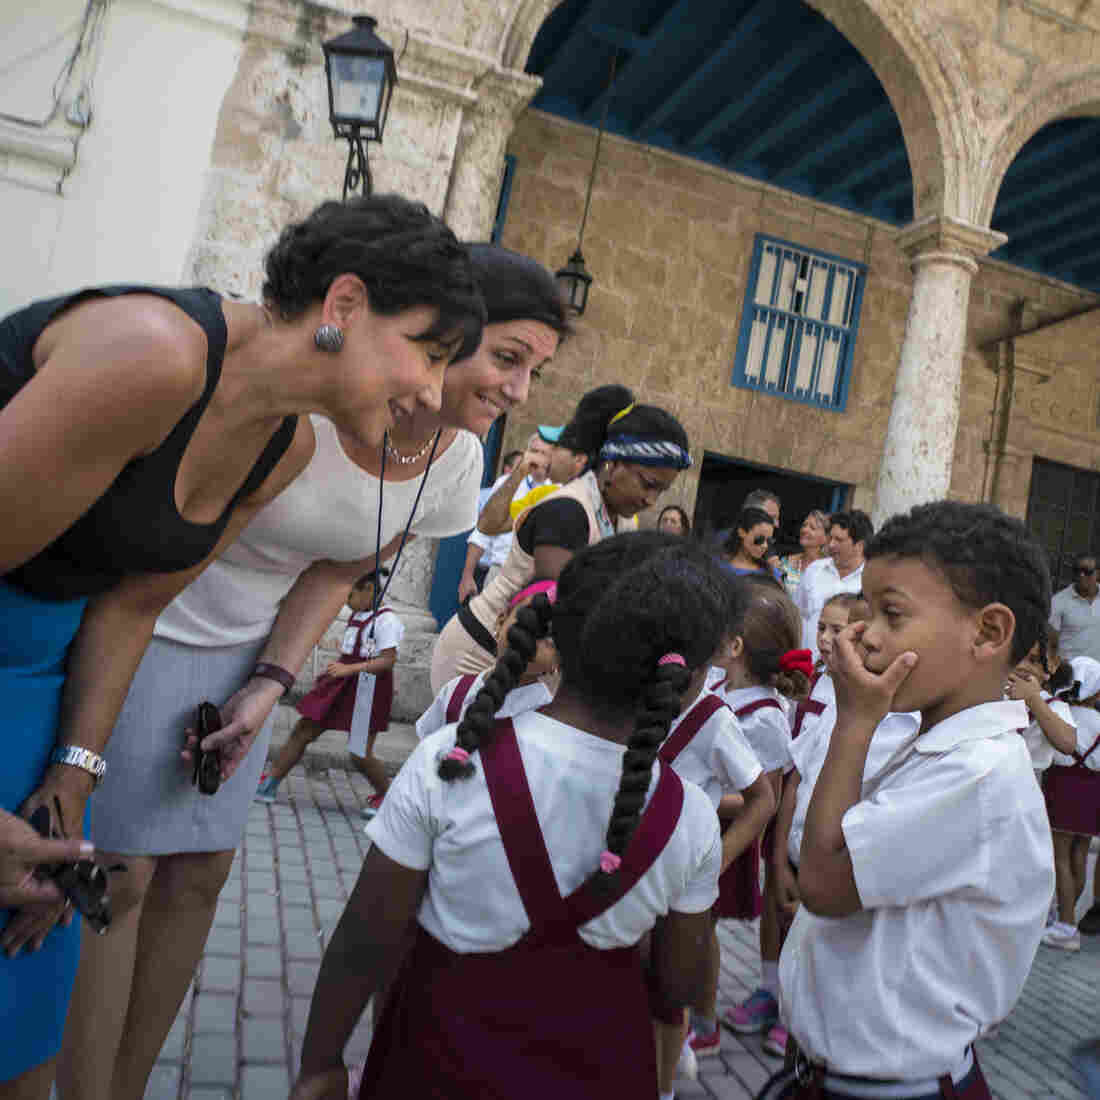 U.S. Commerce Secretary Penny Pritzker (left)talks with students in Havana in October. Pritzker led a delegation of U.S. officials who met their Cuban counterparts and businessmen to explore expanding ties. While restrictions are being removed, increased business links between the countries are limited so far.